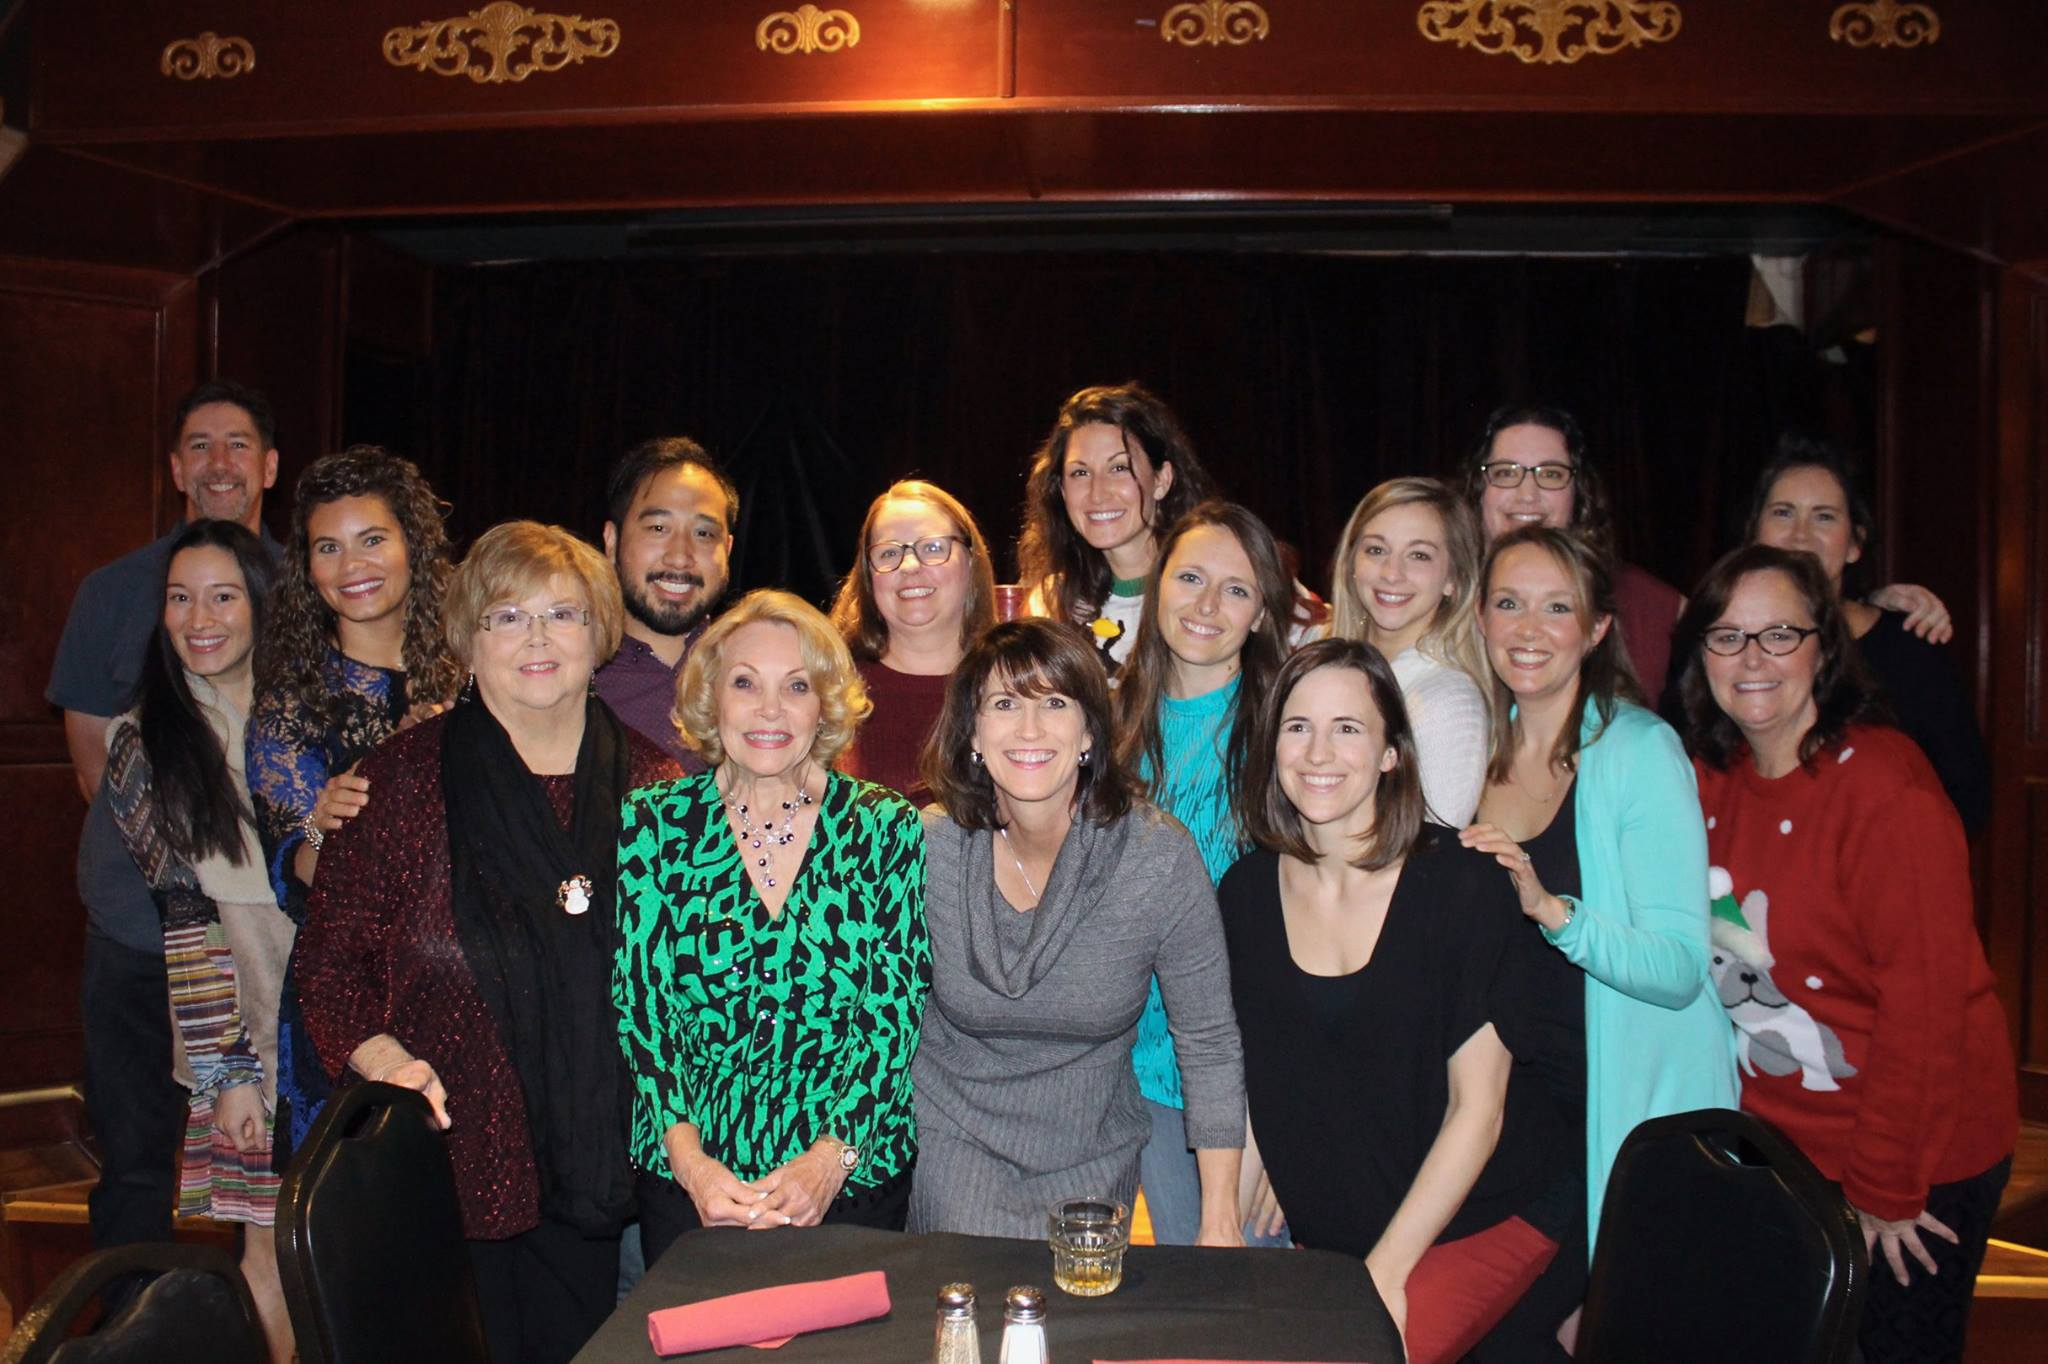 Our whole team at our year-end holiday party, minus a few faces!